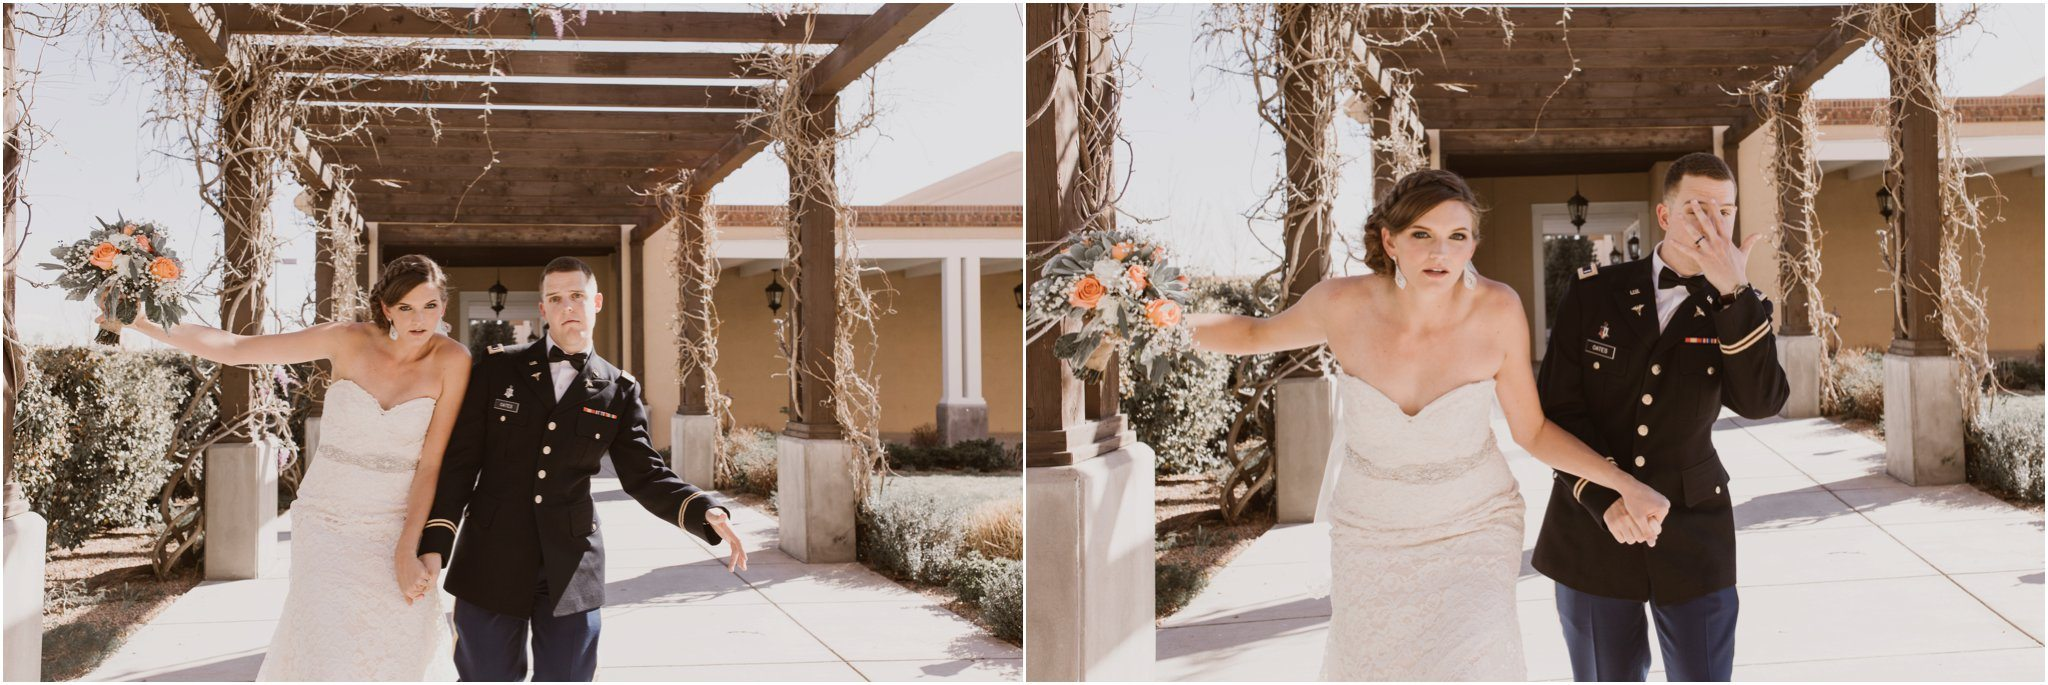 39Blue Rose Photography_ Albuquerque Wedding Photographer_ Santa Fe Wedding Photographers